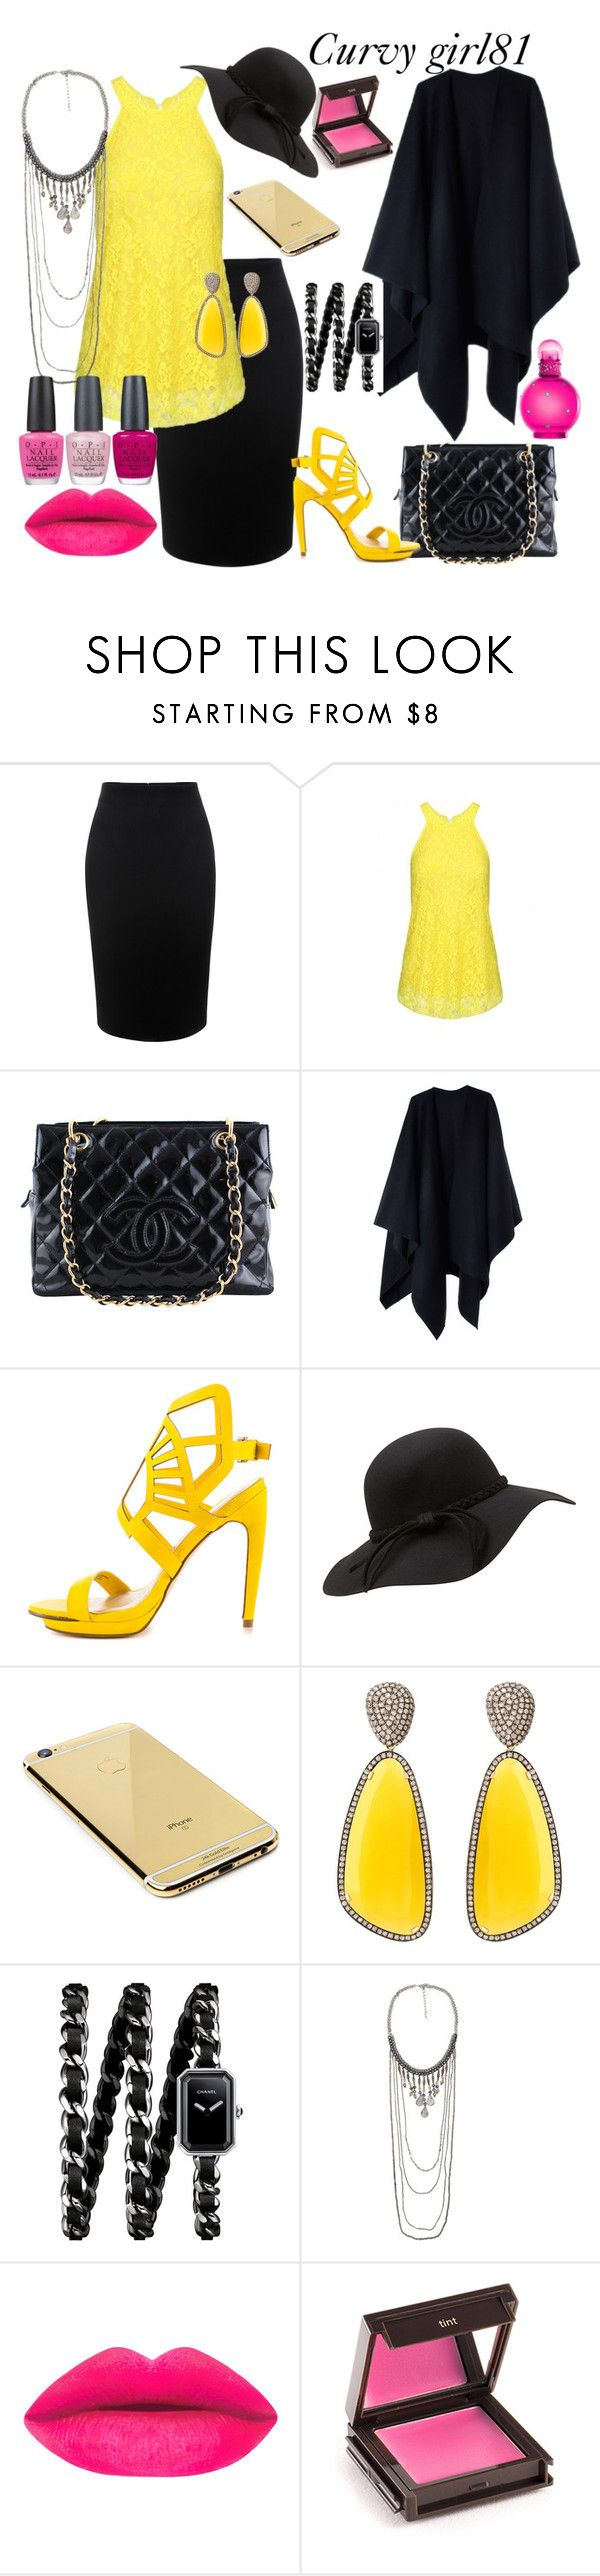 """Curvy set dual color"" by pretty-girl81 on Polyvore featuring moda, Alexander McQueen, Chanel, Acne Studios, Penny Loves Kenny, Goldgenie, Christina Debs, Jouer, OPI e women's clothing"